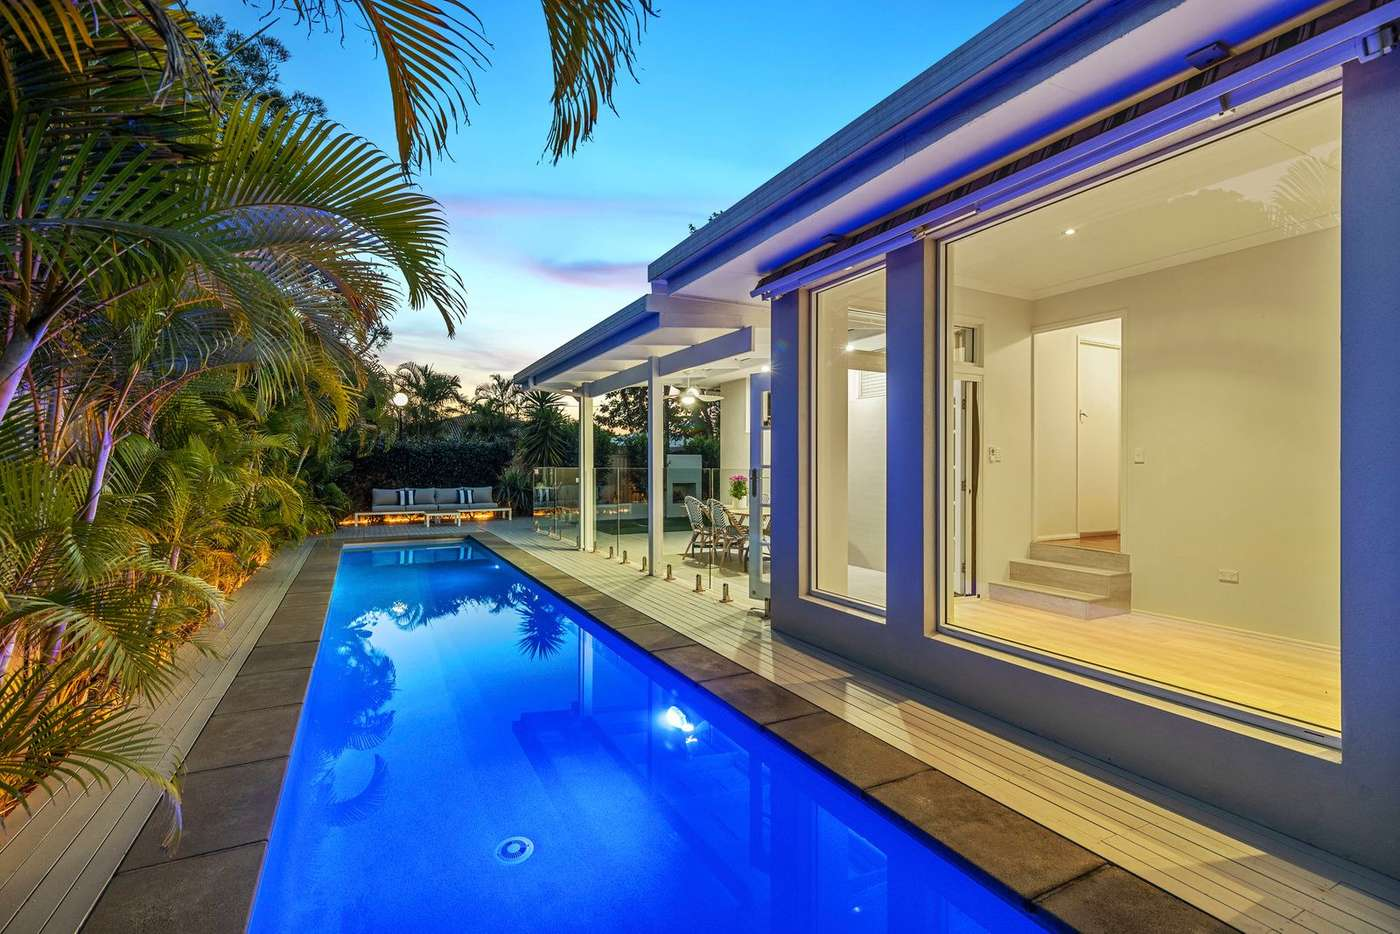 Main view of Homely house listing, 7 Celebes Avenue, Palm Beach QLD 4221